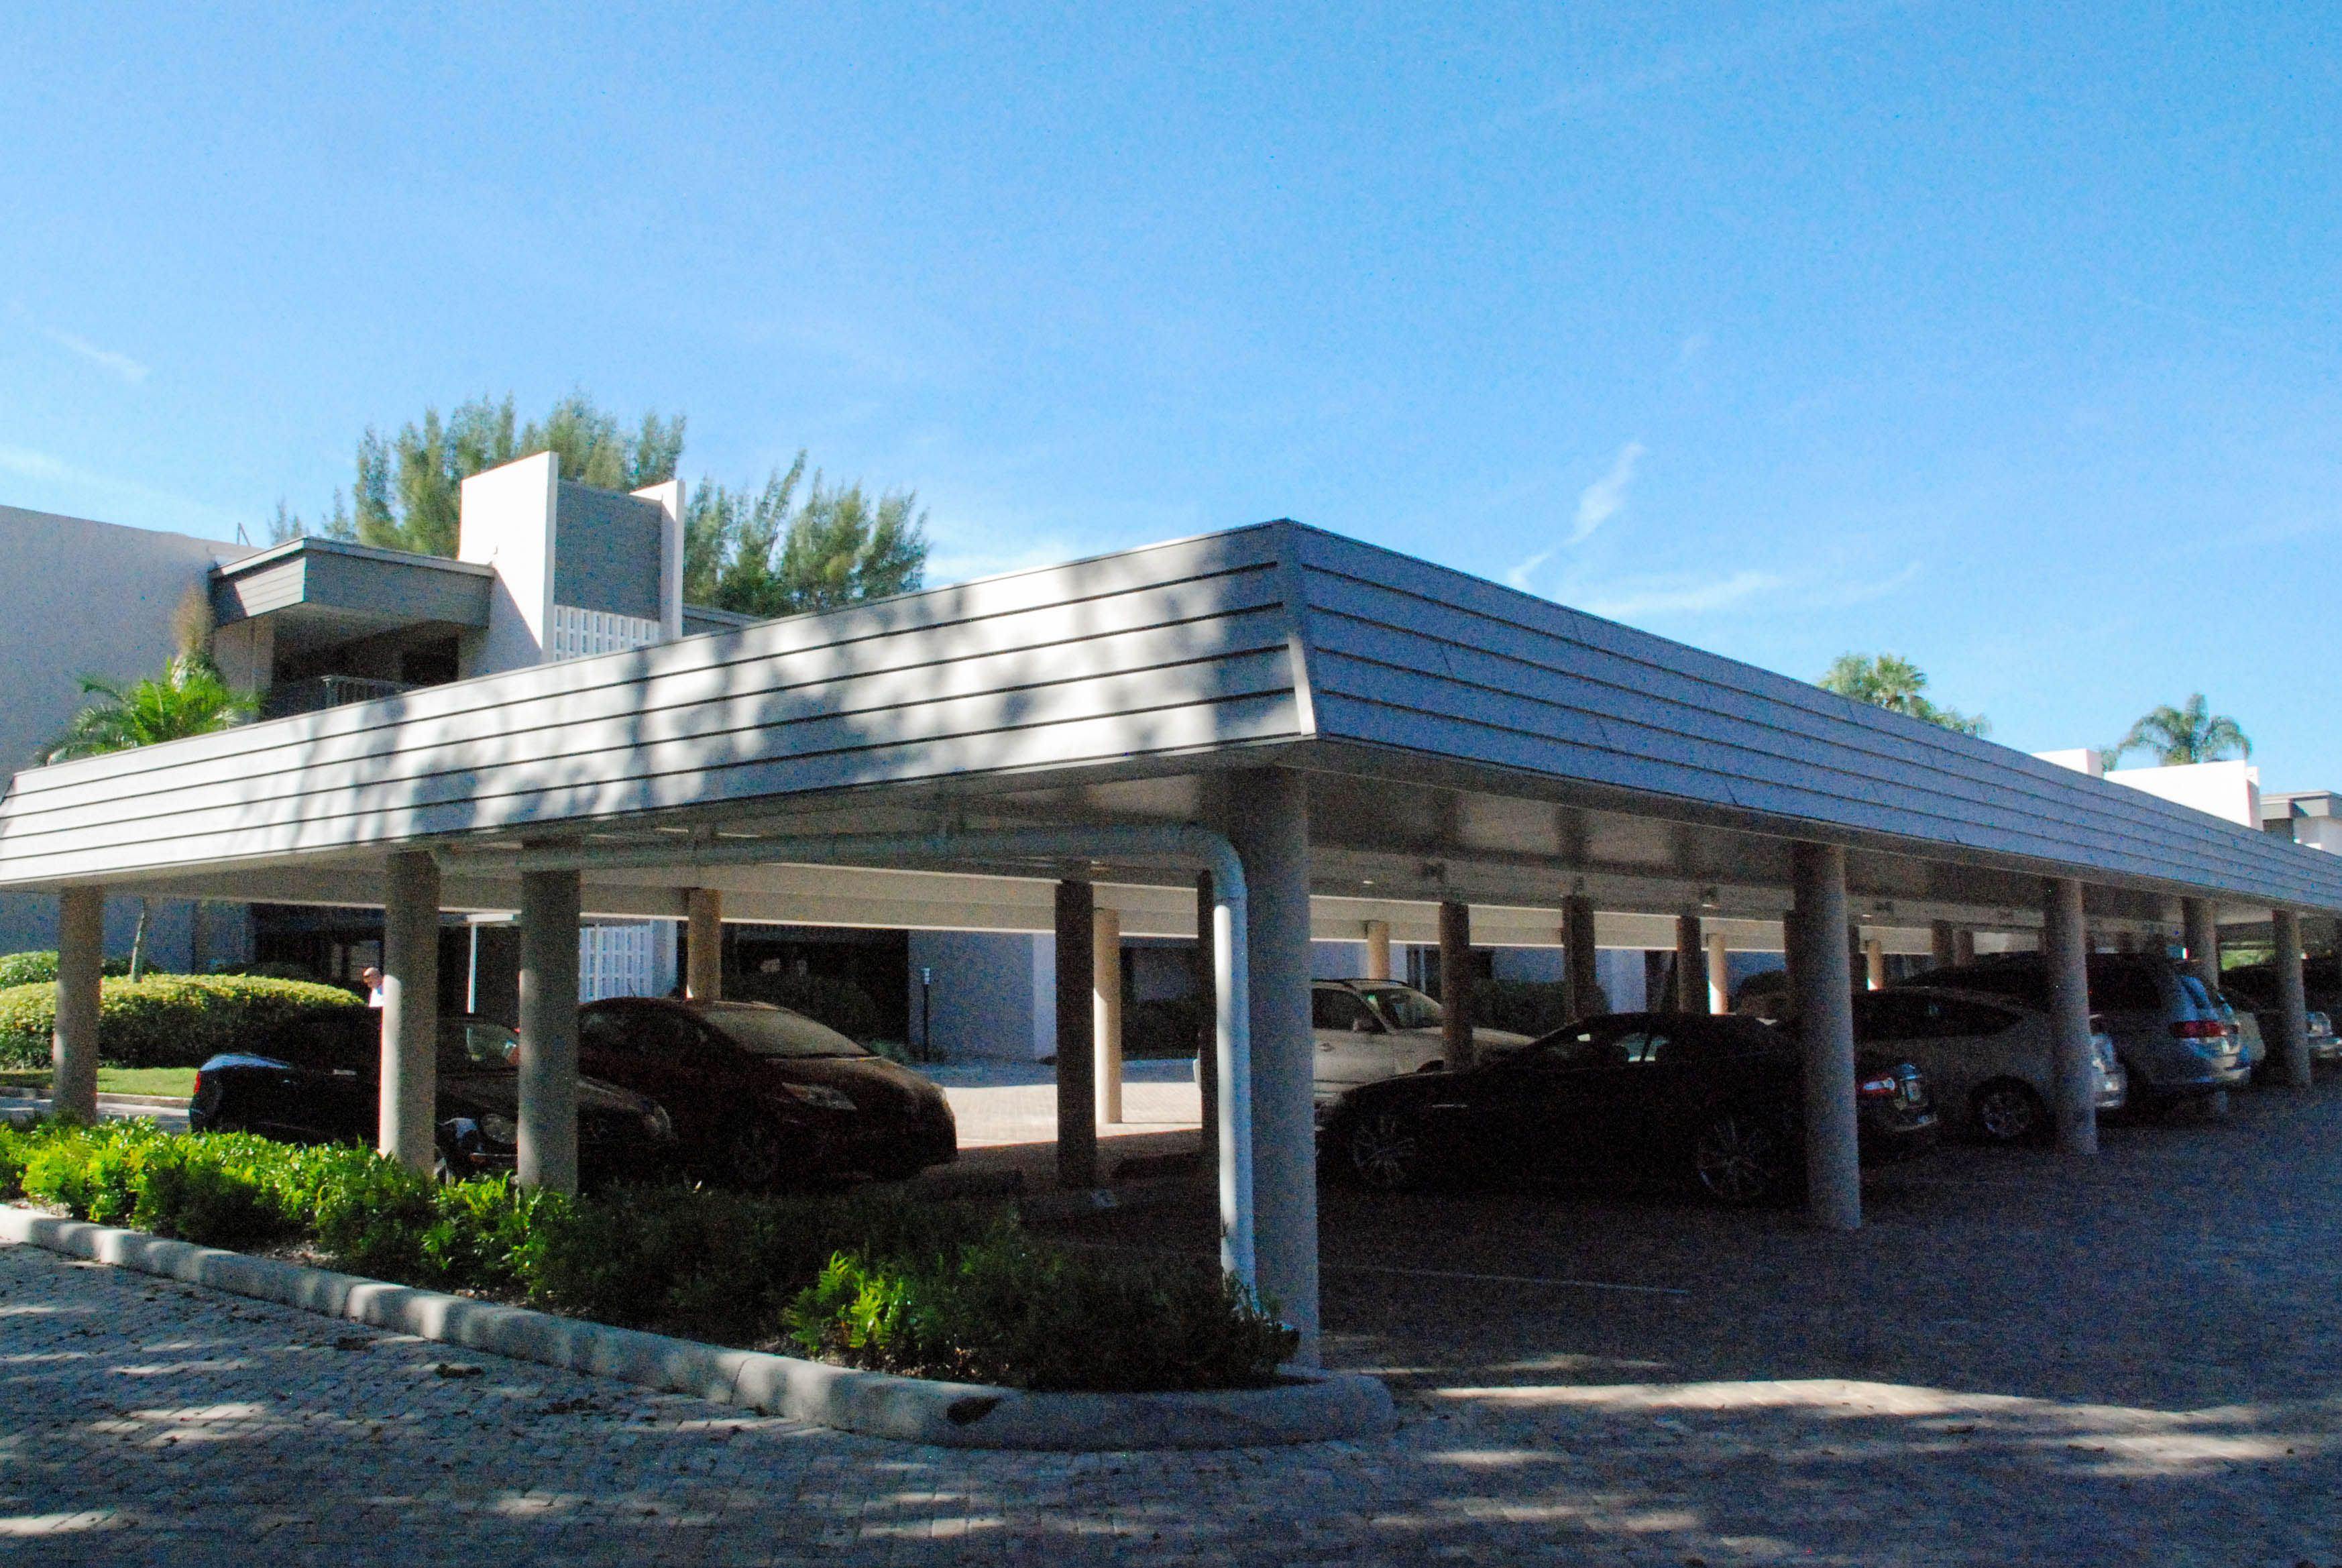 Commercial aluminum carport roof Metal roofing systems